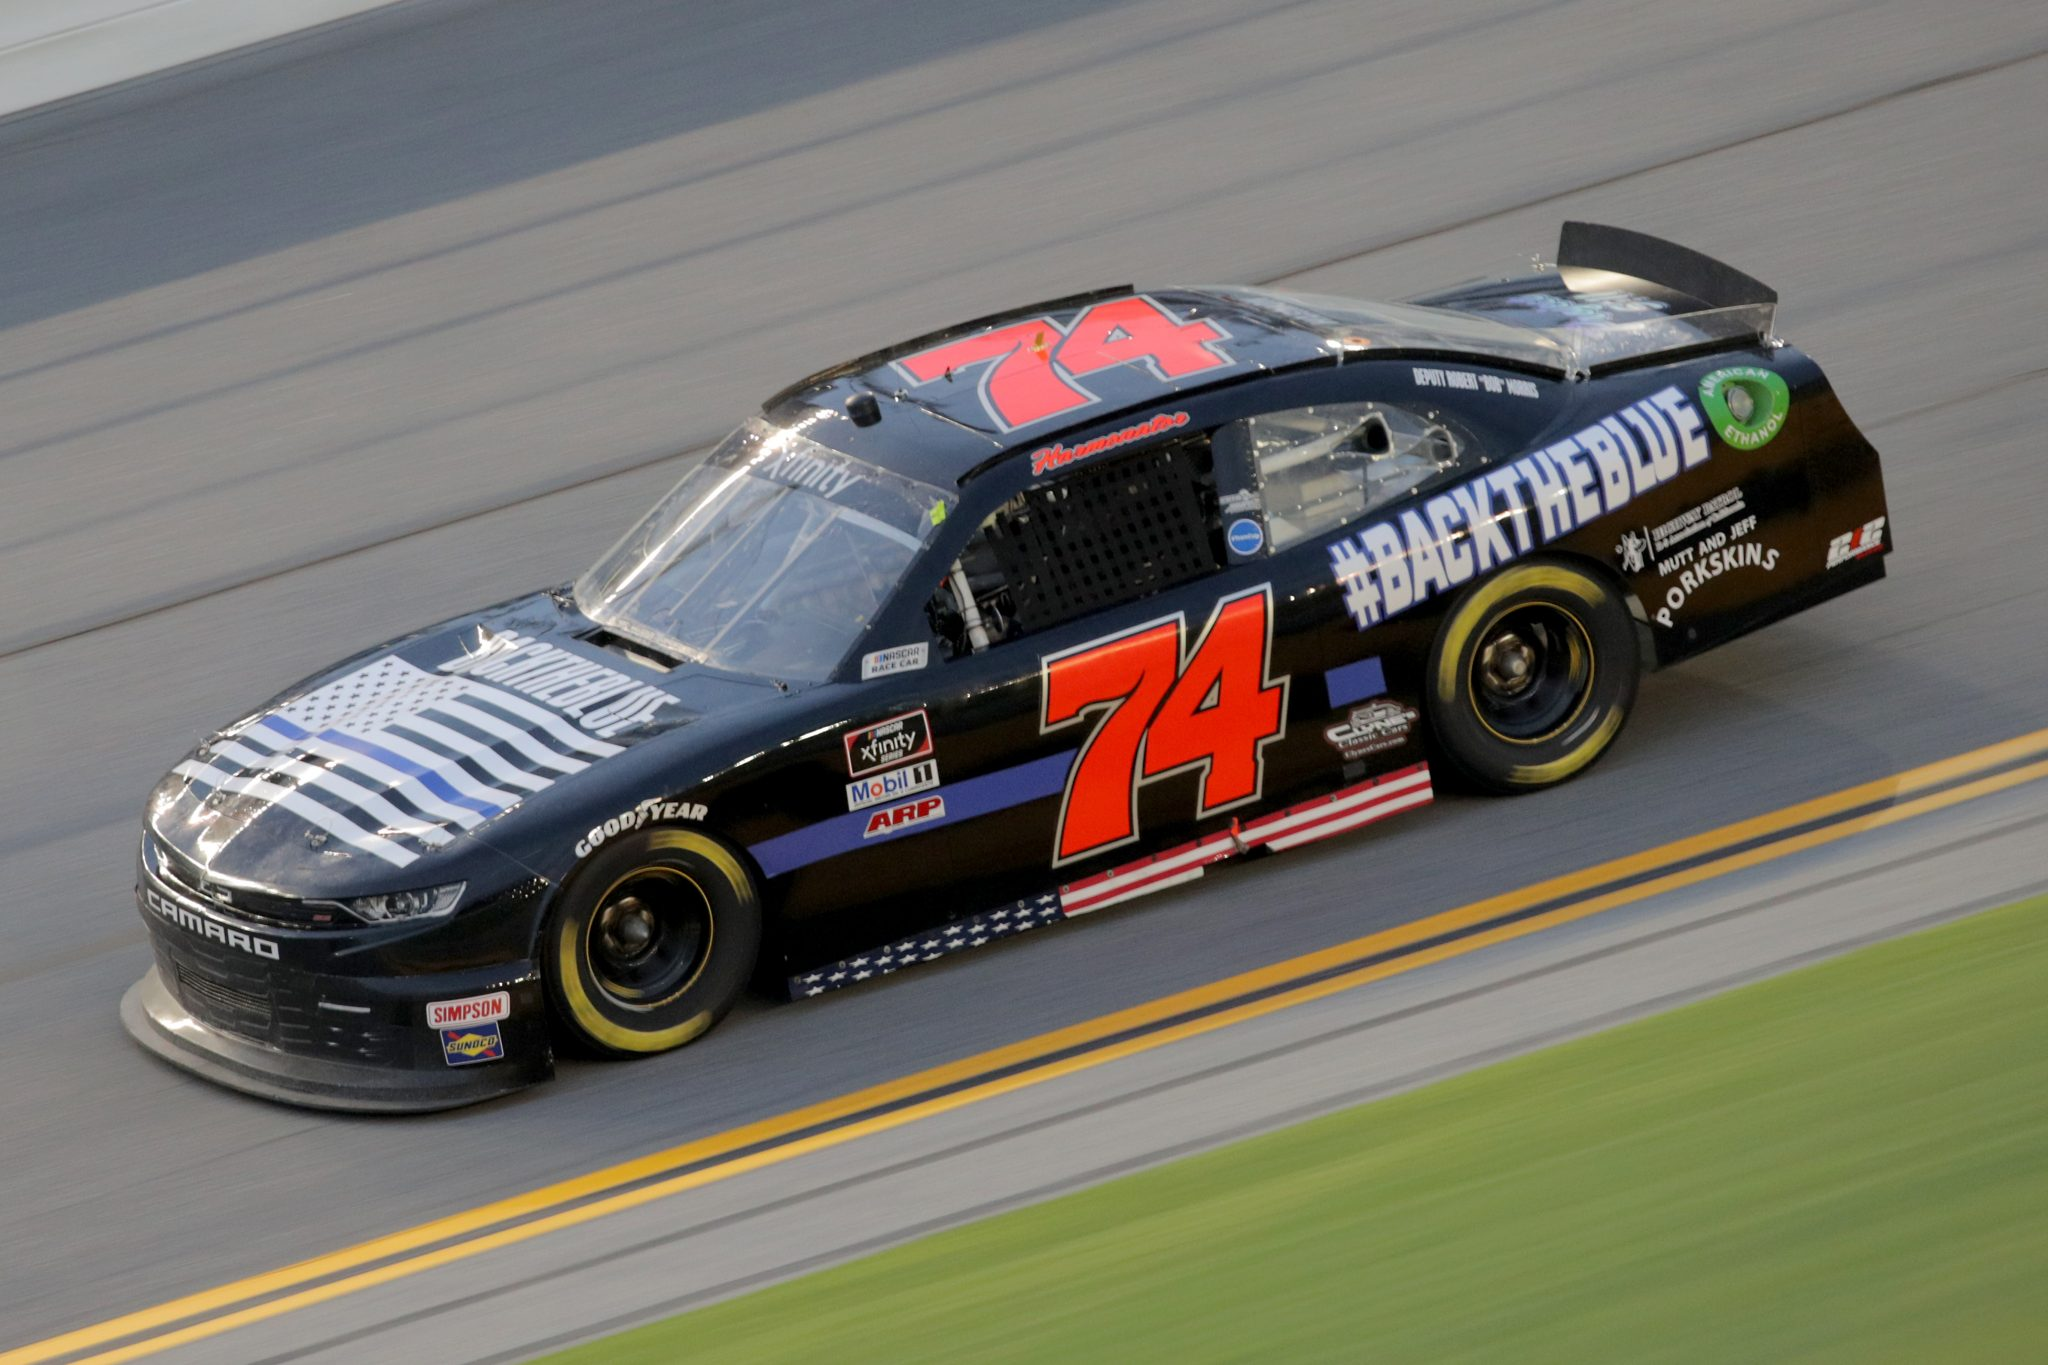 DAYTONA BEACH, FLORIDA - AUGUST 28: Mike Harmon, driver of the #74 Mutt and Jeff Porkskins Inc. Chevrolet, drives during the NASCAR Xfinity Series Wawa 250 Powered by Coca-Cola at Daytona International Speedway on August 28, 2020 in Daytona Beach, Florida. (Photo by Chris Graythen/Getty Images)   Getty Images